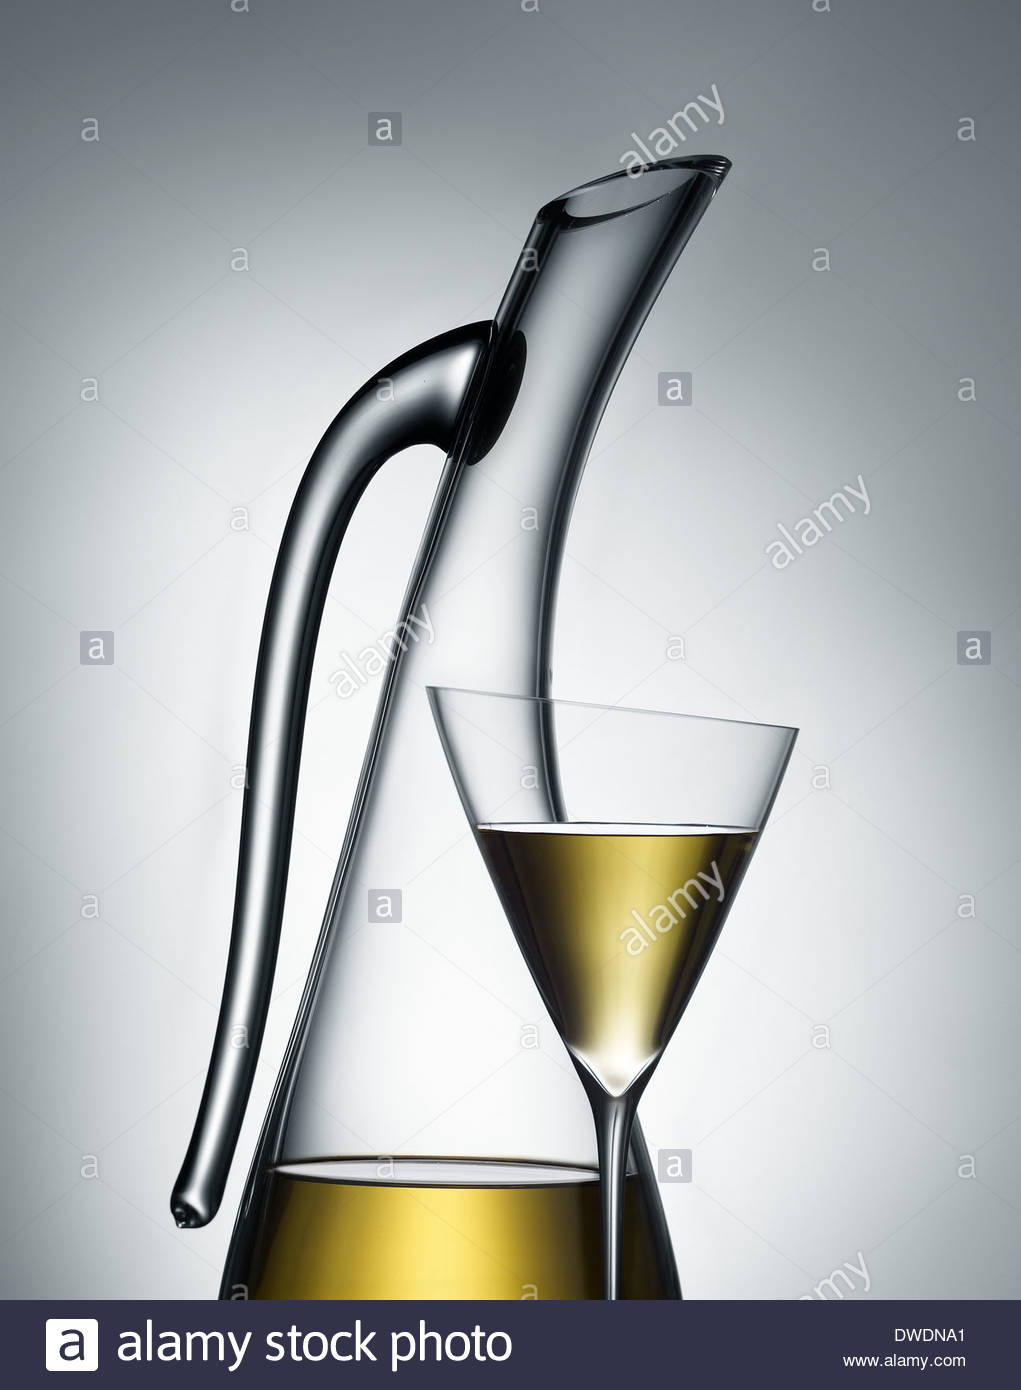 translucent image of a contemporary wine carafe and glass with golden white wine against light gray background - Stock Image